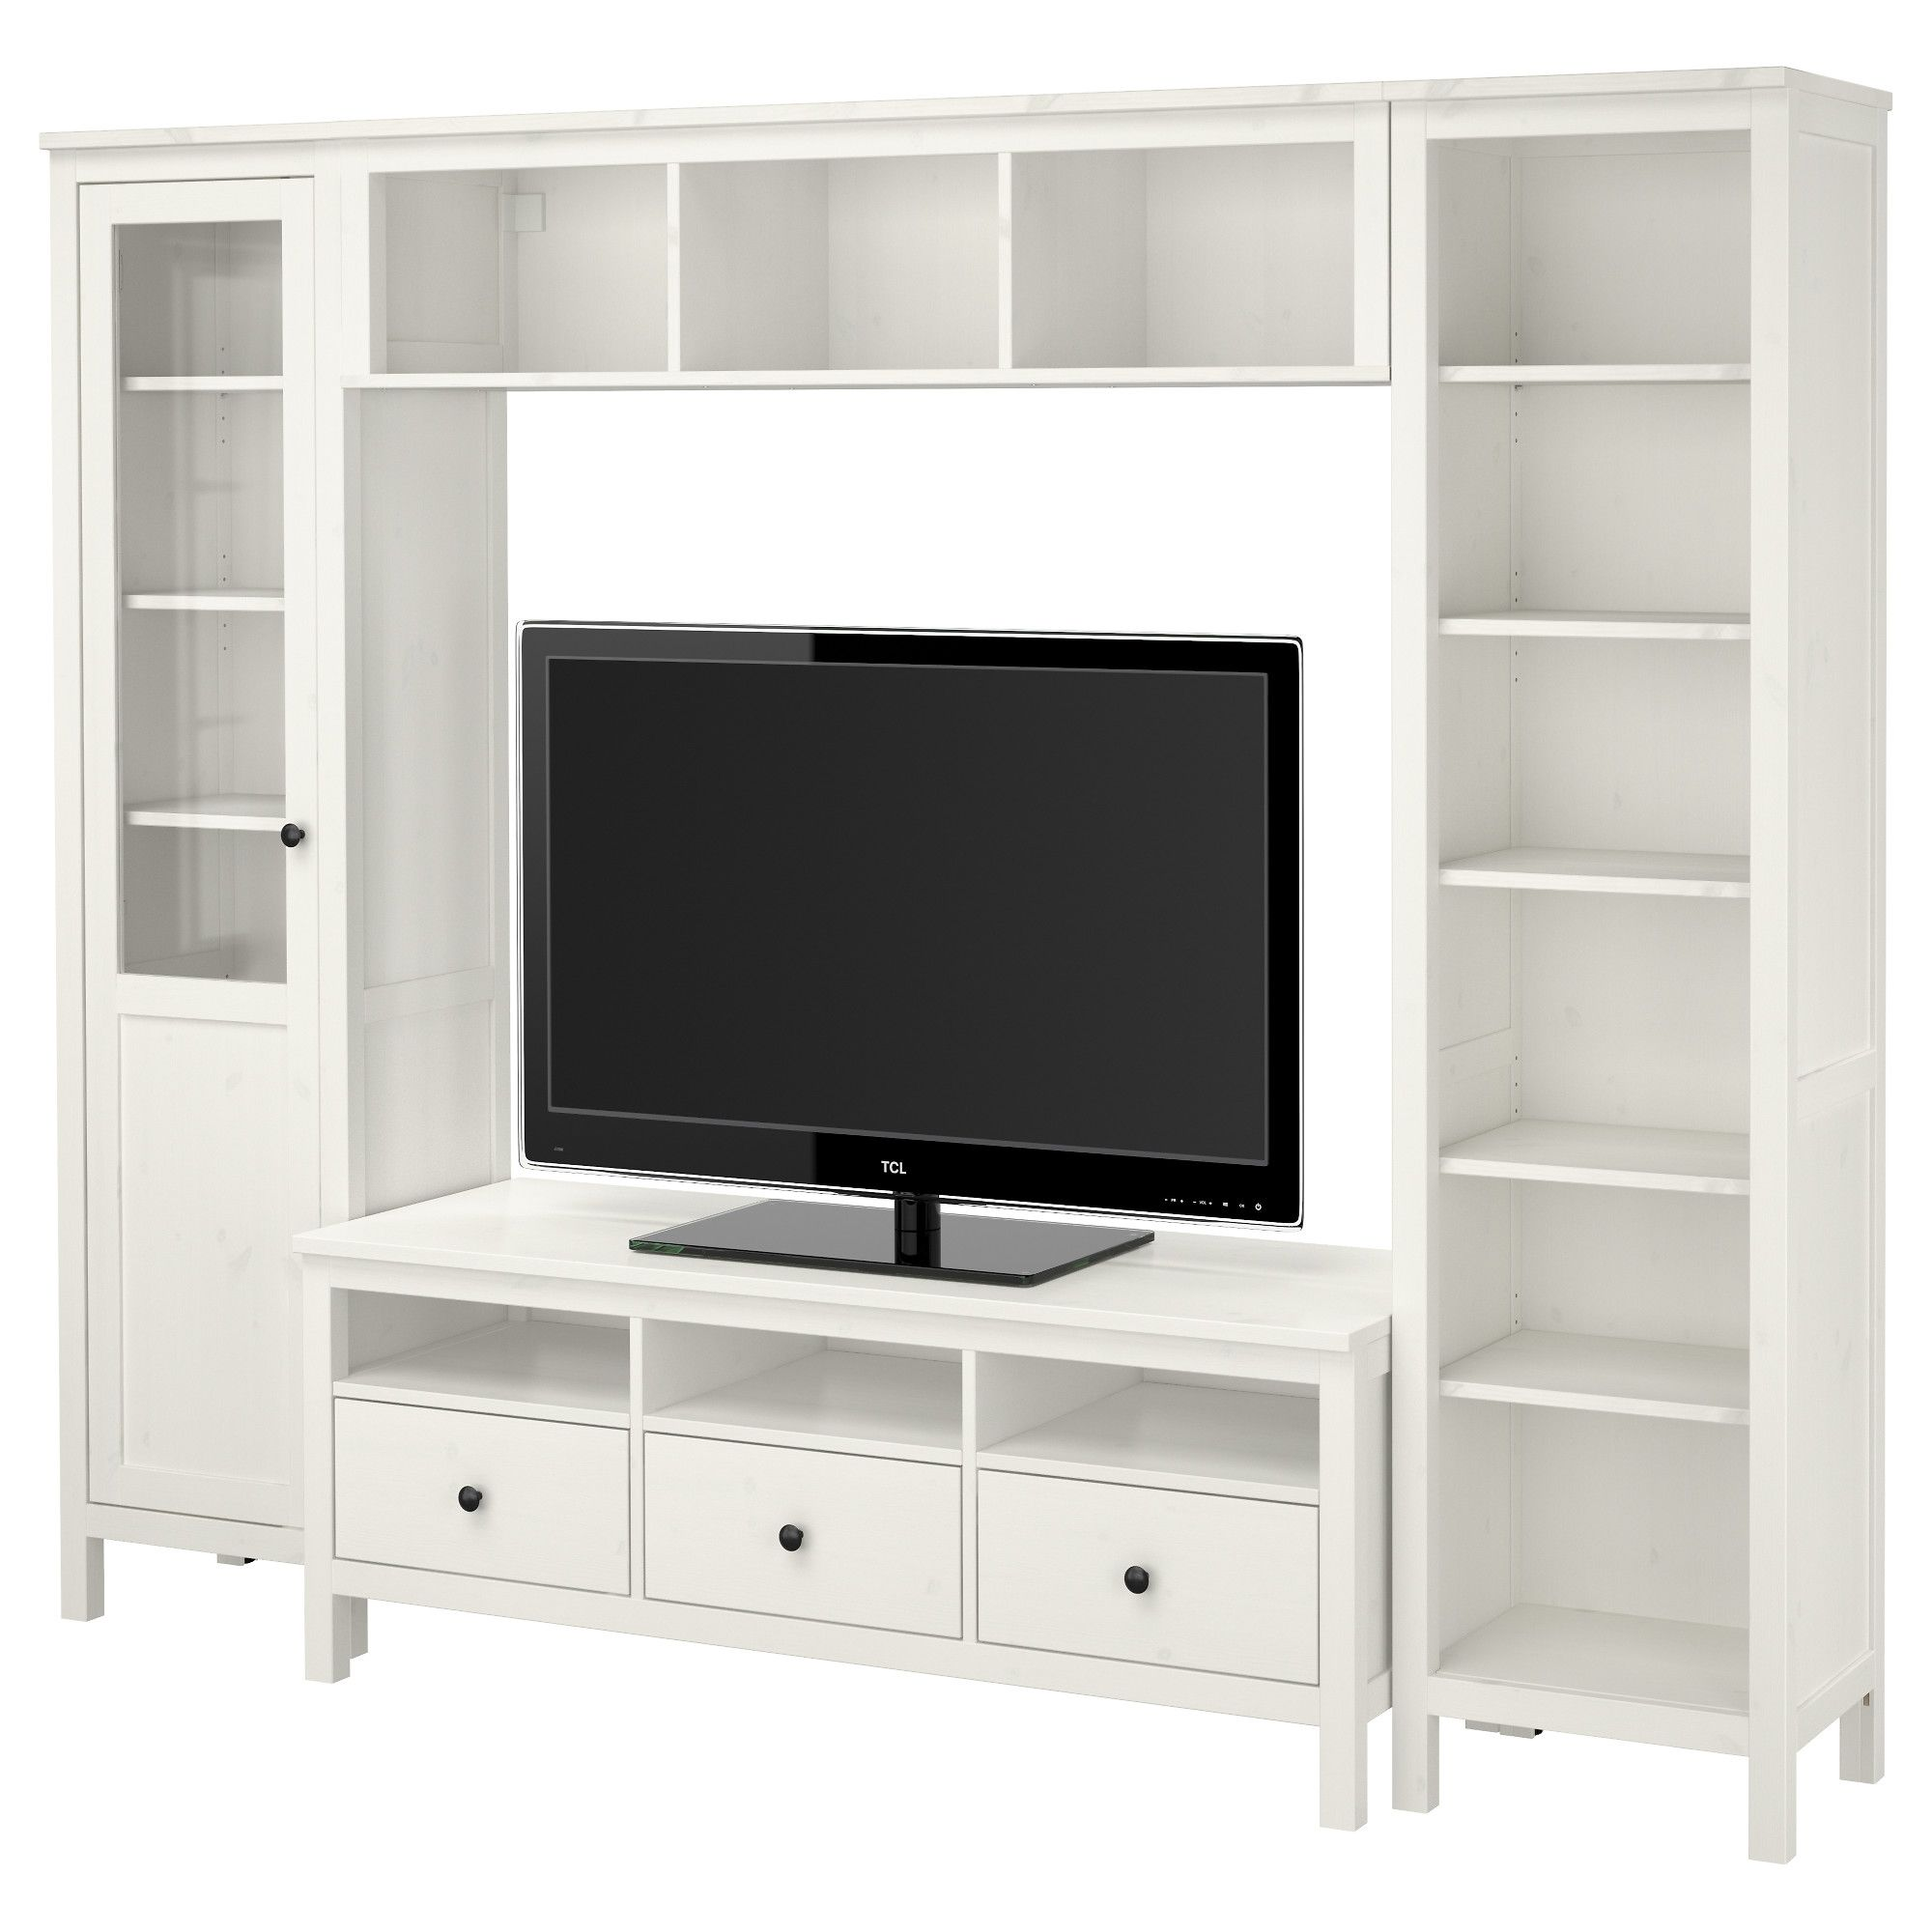 Hemnes Tv Storage Combination White Stain Ikea Width 97 1 4  # Meuble Tv Mural Ikea